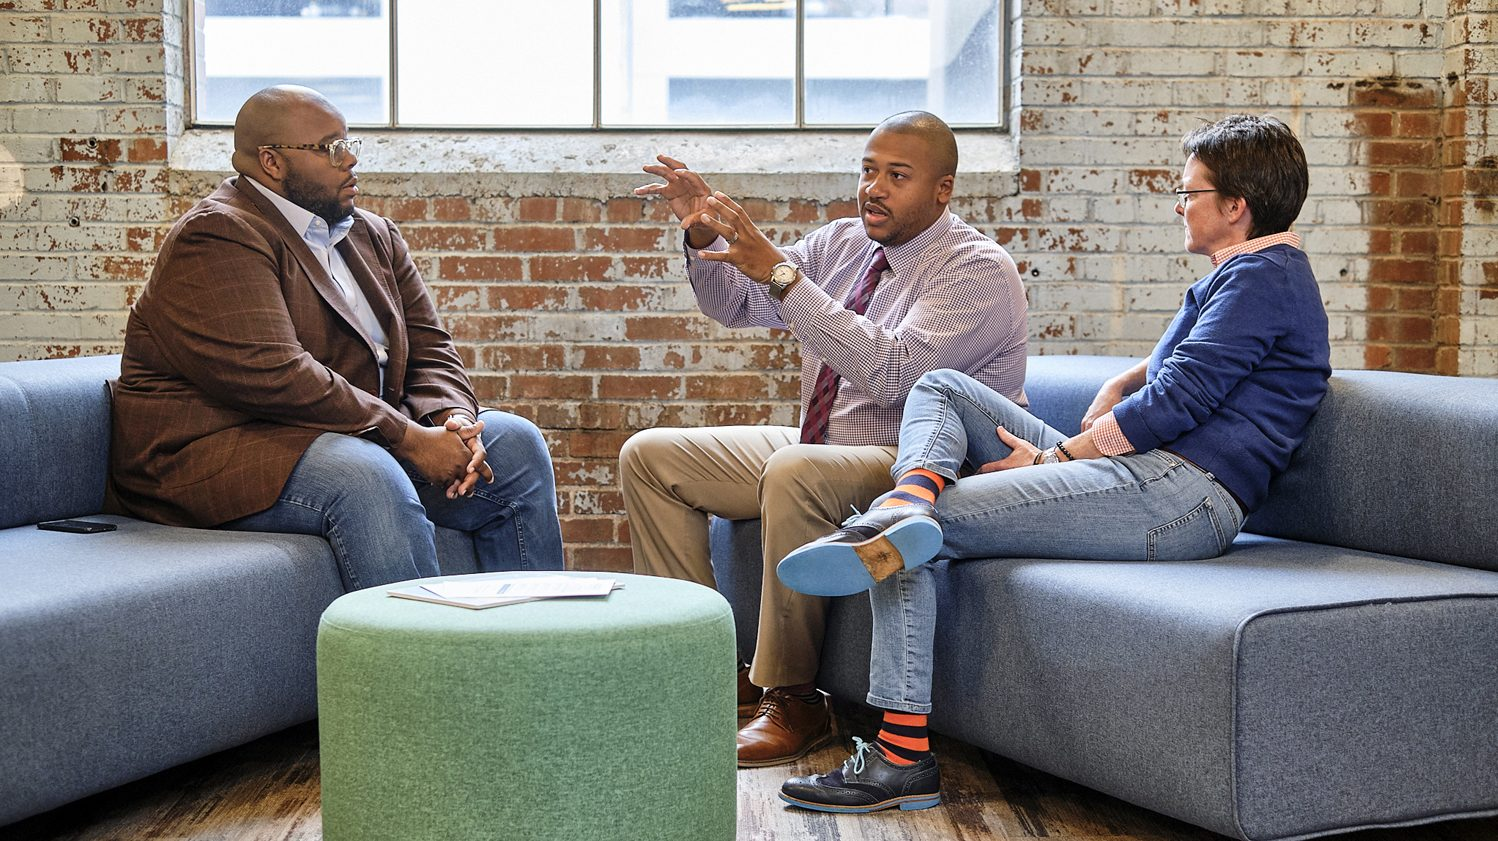 ACCESS mentors chat about ways to support Winston-Salem's startup ecosystem and minority-owned startups